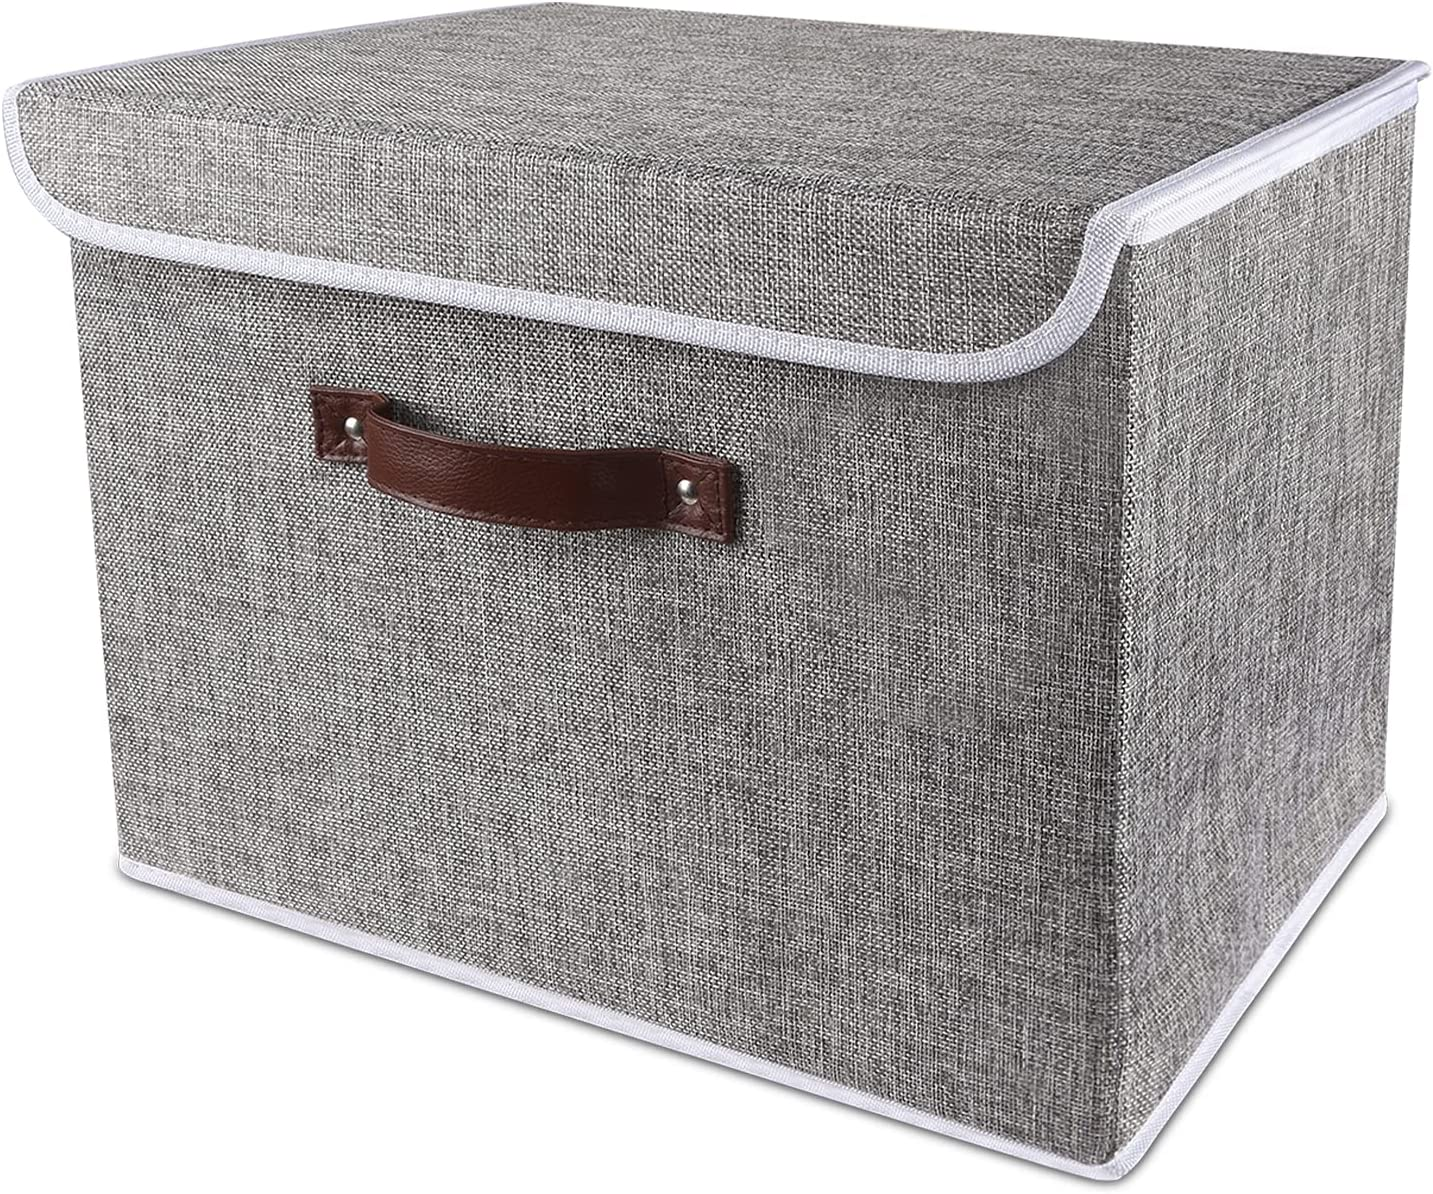 coastal rose Foldable Storage Bins Decorative Manufacturer regenerated product Max 66% OFF Fabric with S Lids